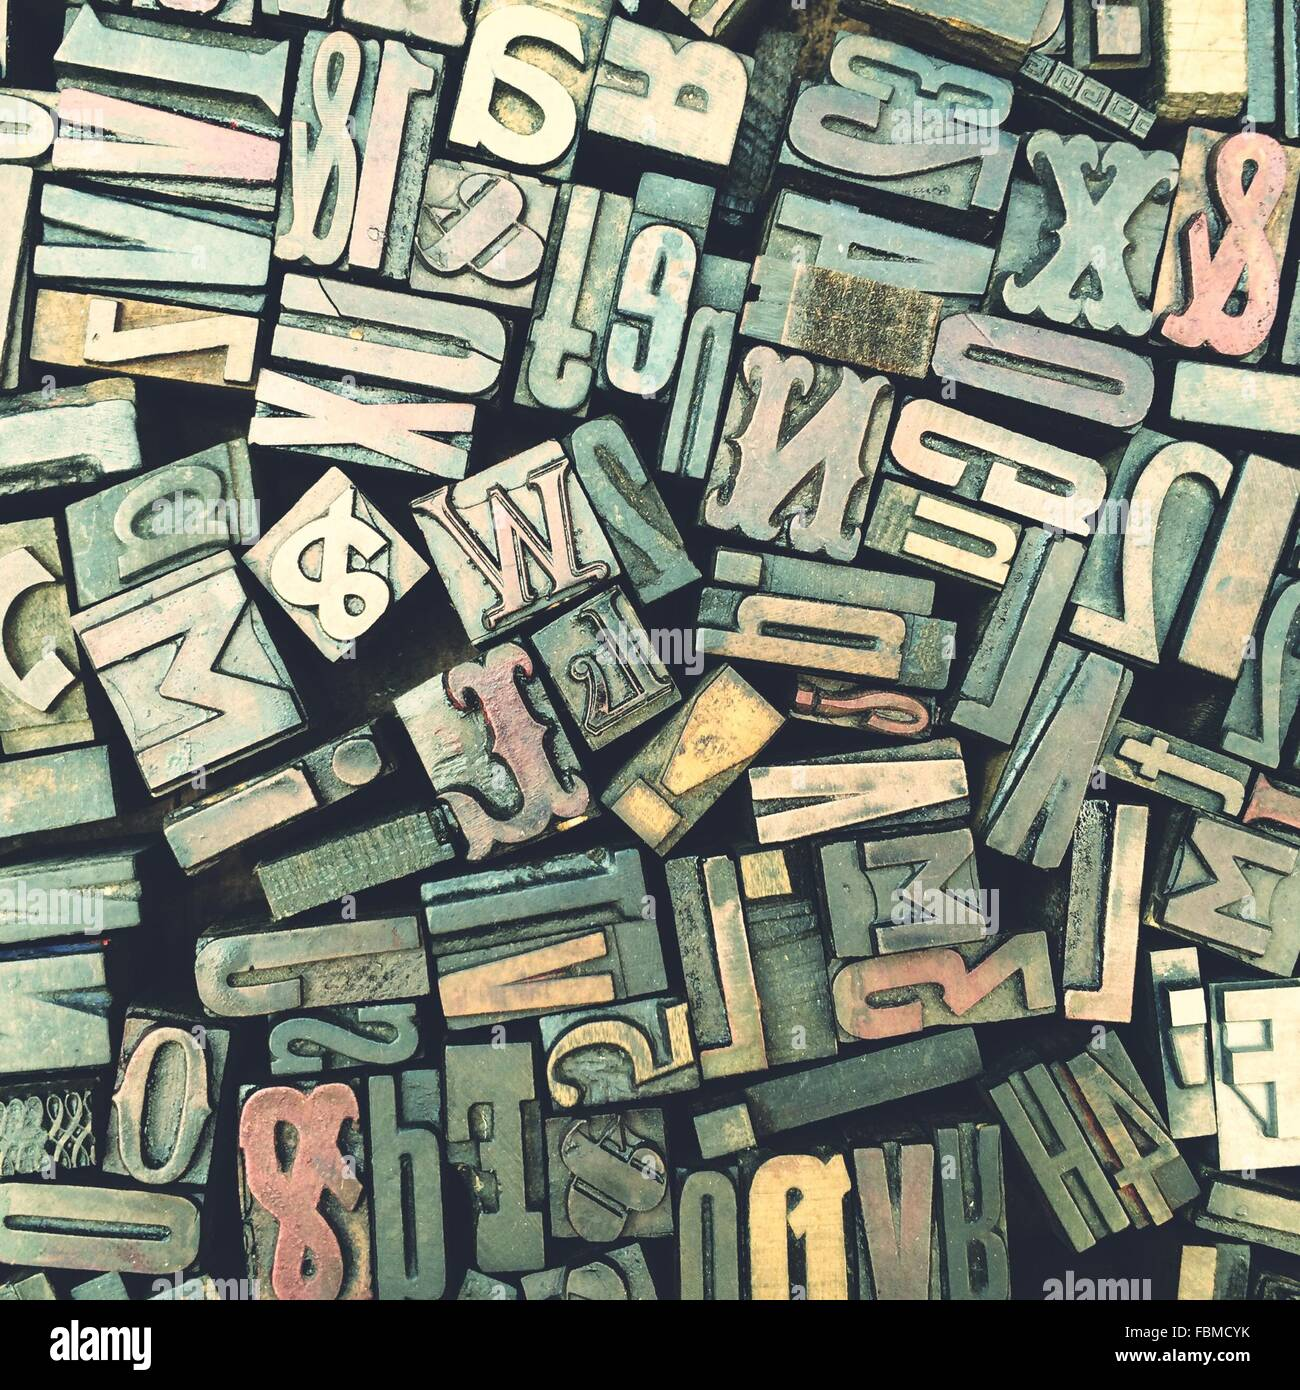 Different Sizes Of Typographical Pieces Assembled In Letters - Stock Image